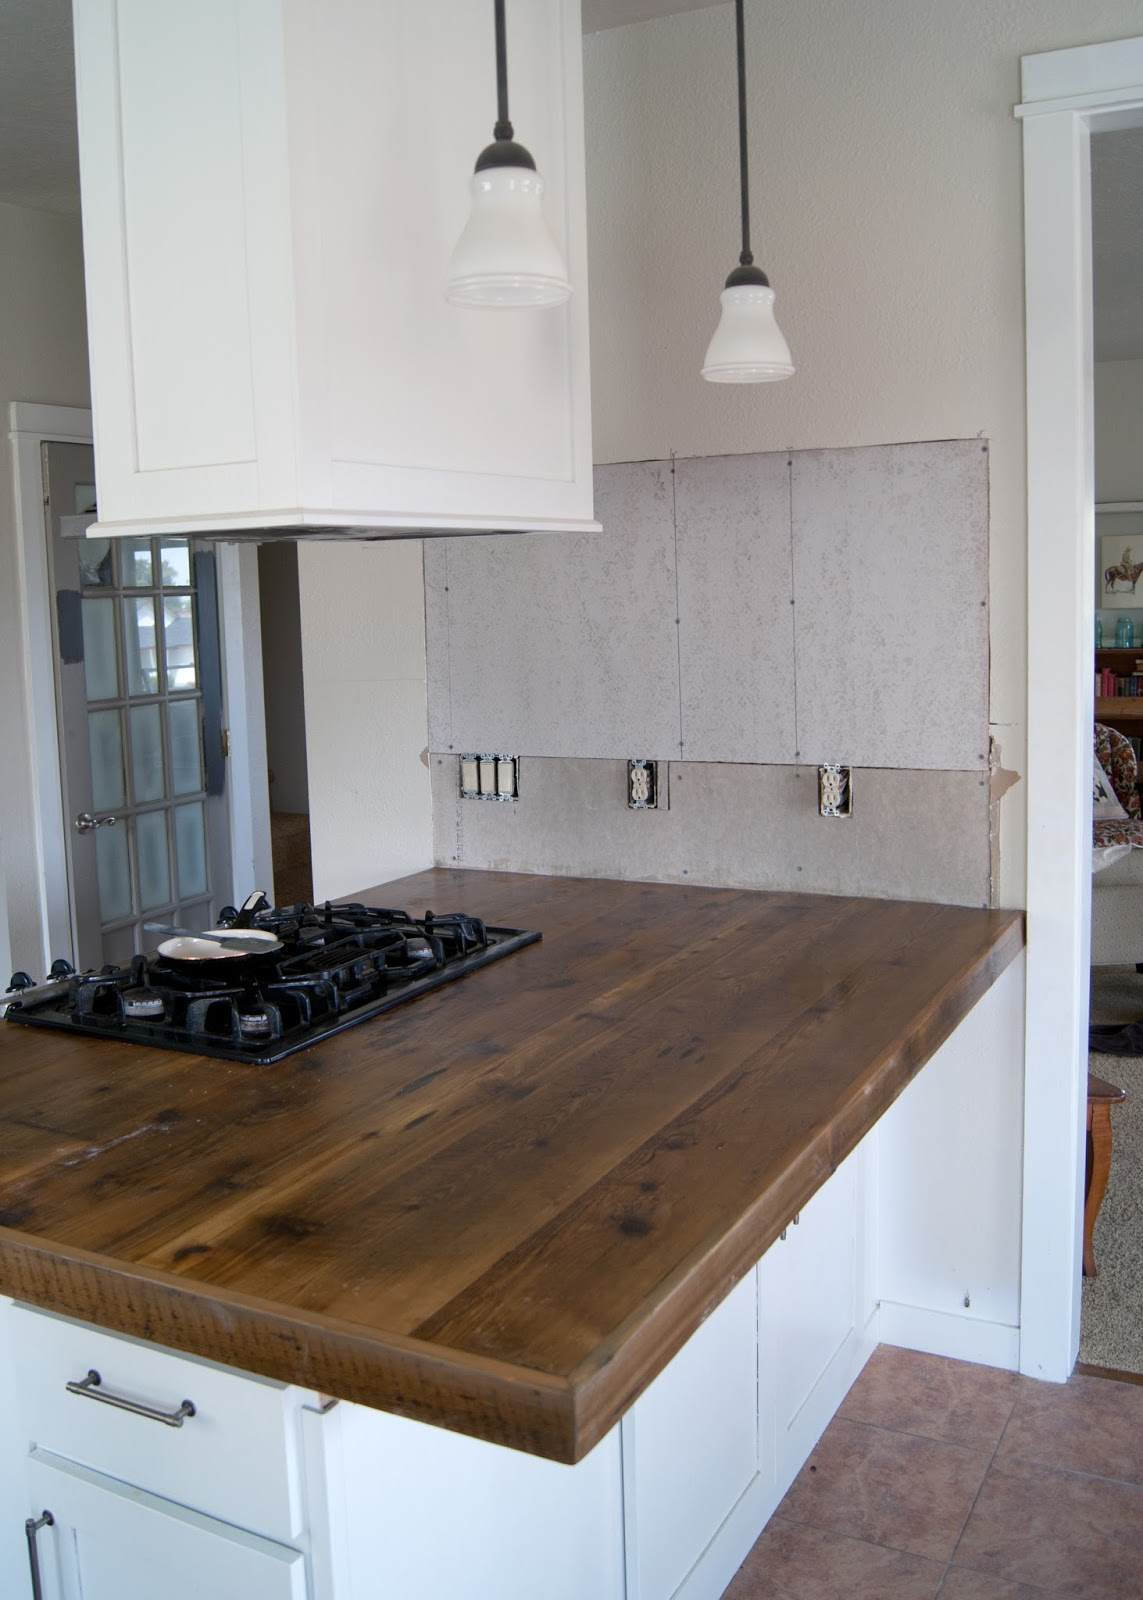 diy reclaimed wood countertop kitchen island countertop DIY Reclaimed Wood Countertop afte